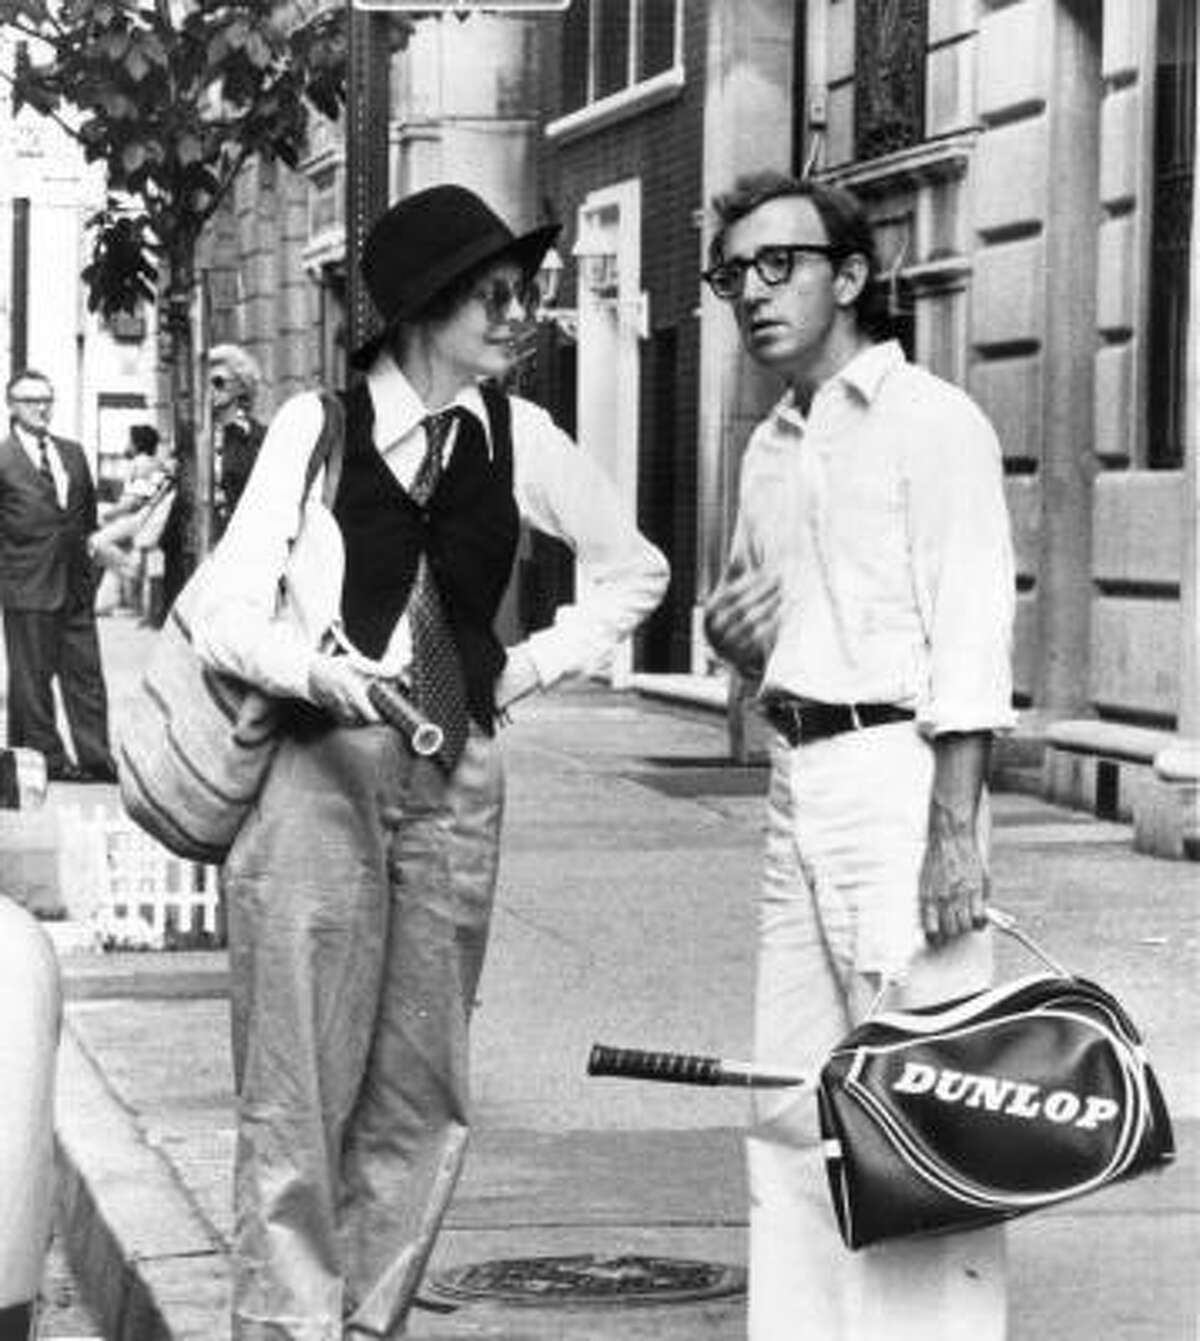 Annie Hall was a win for Woody Allen in 1977, dominating the Academy Awards in 1977, winning Oscars for best picture, best director, best actress and best screenplay. What better known film did it beat out for Best Picture?